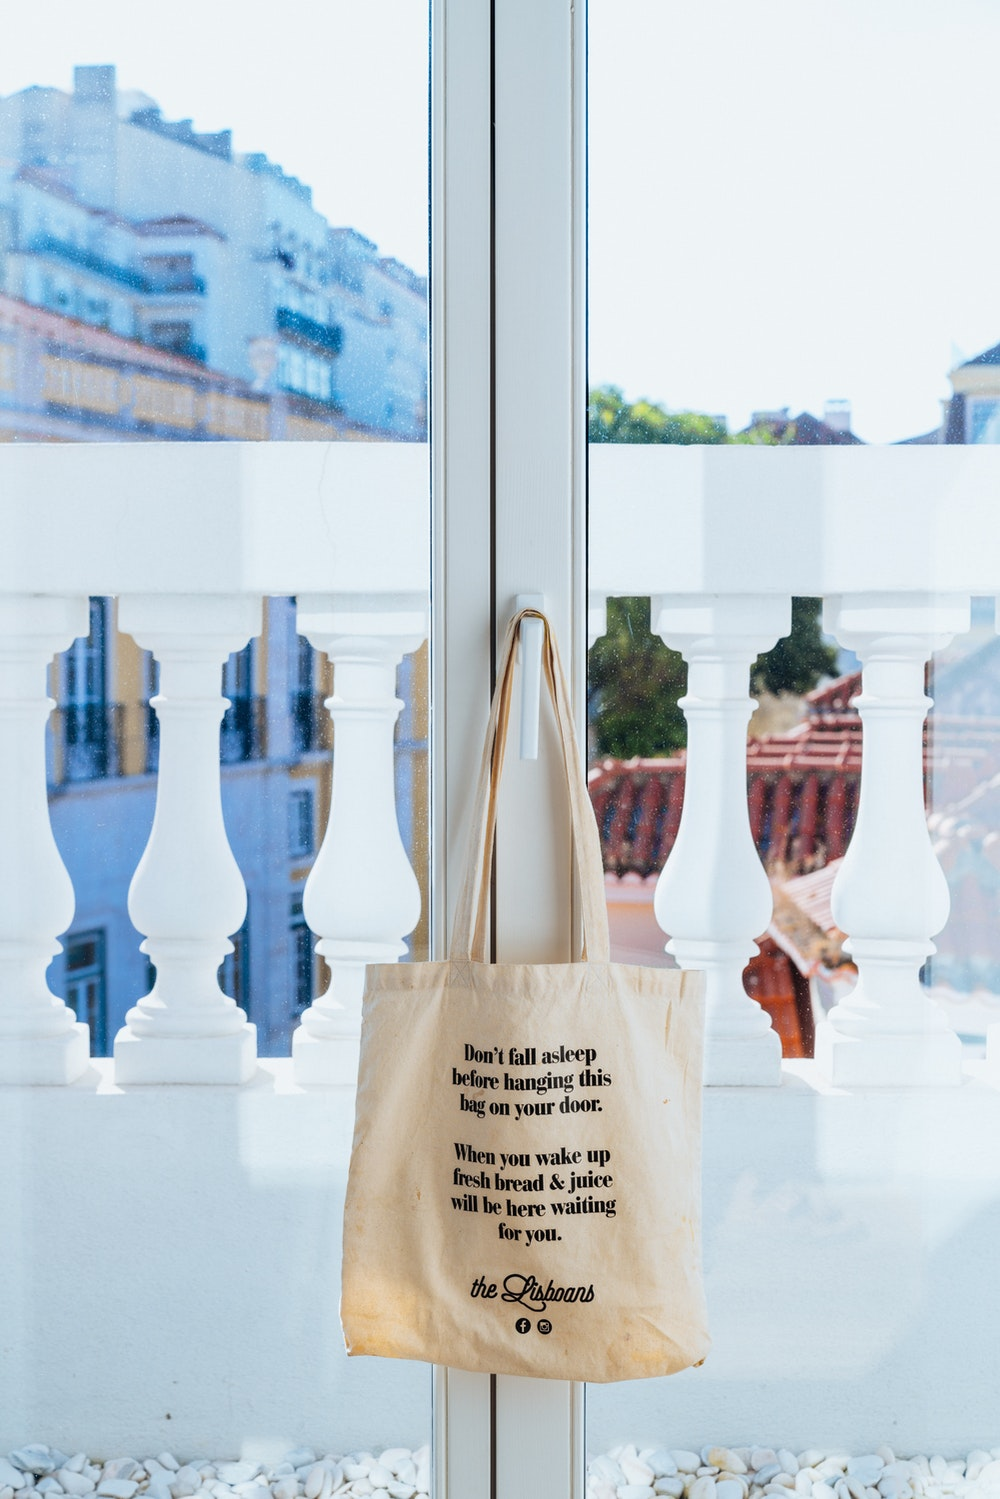 Tote bag hanging on glass doors at The Lisboans in Lisbon, Portugal